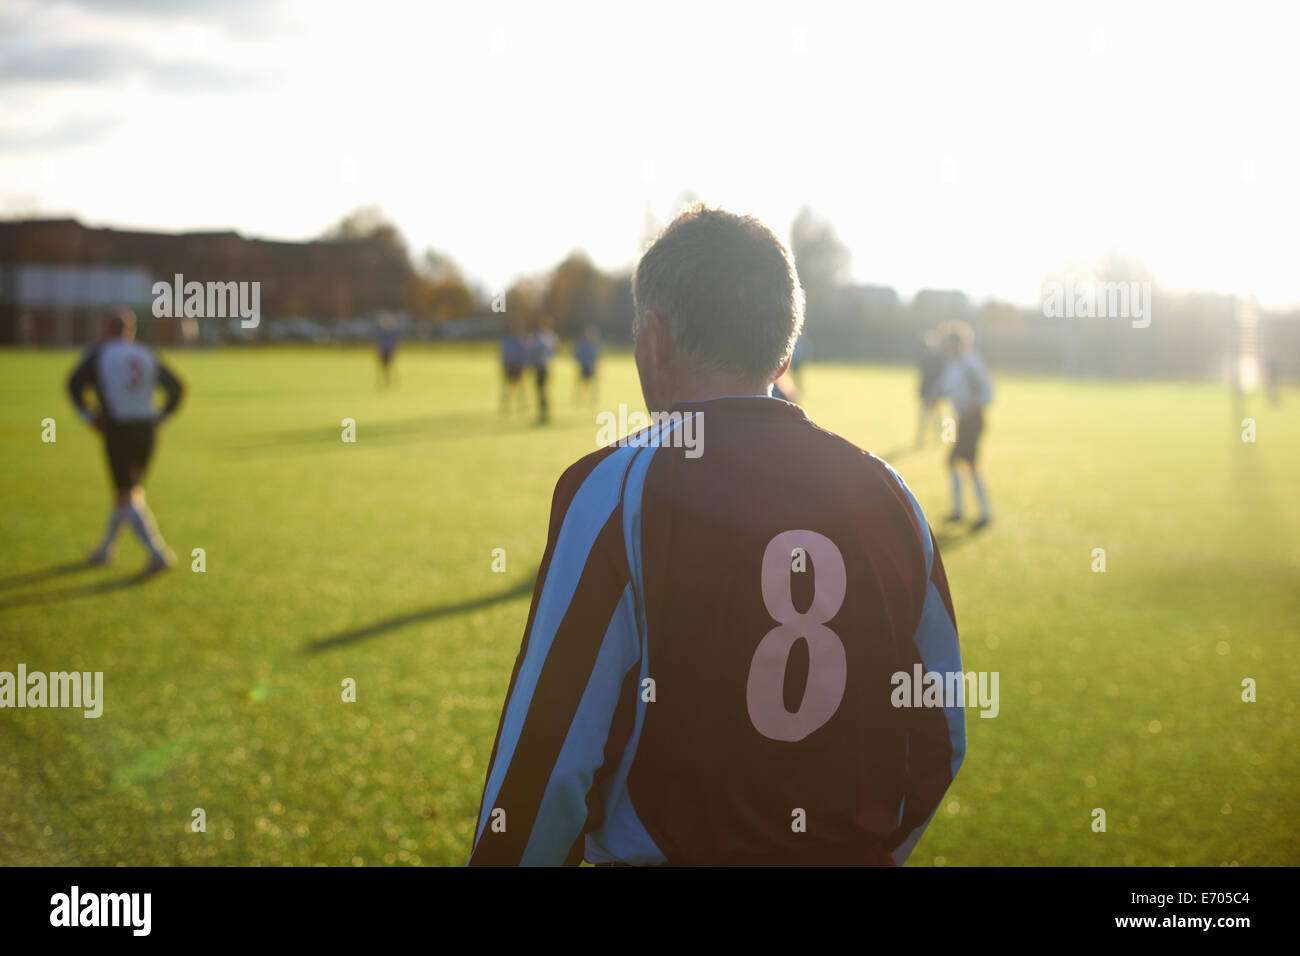 Rearview of football player number 8 - Stock Image